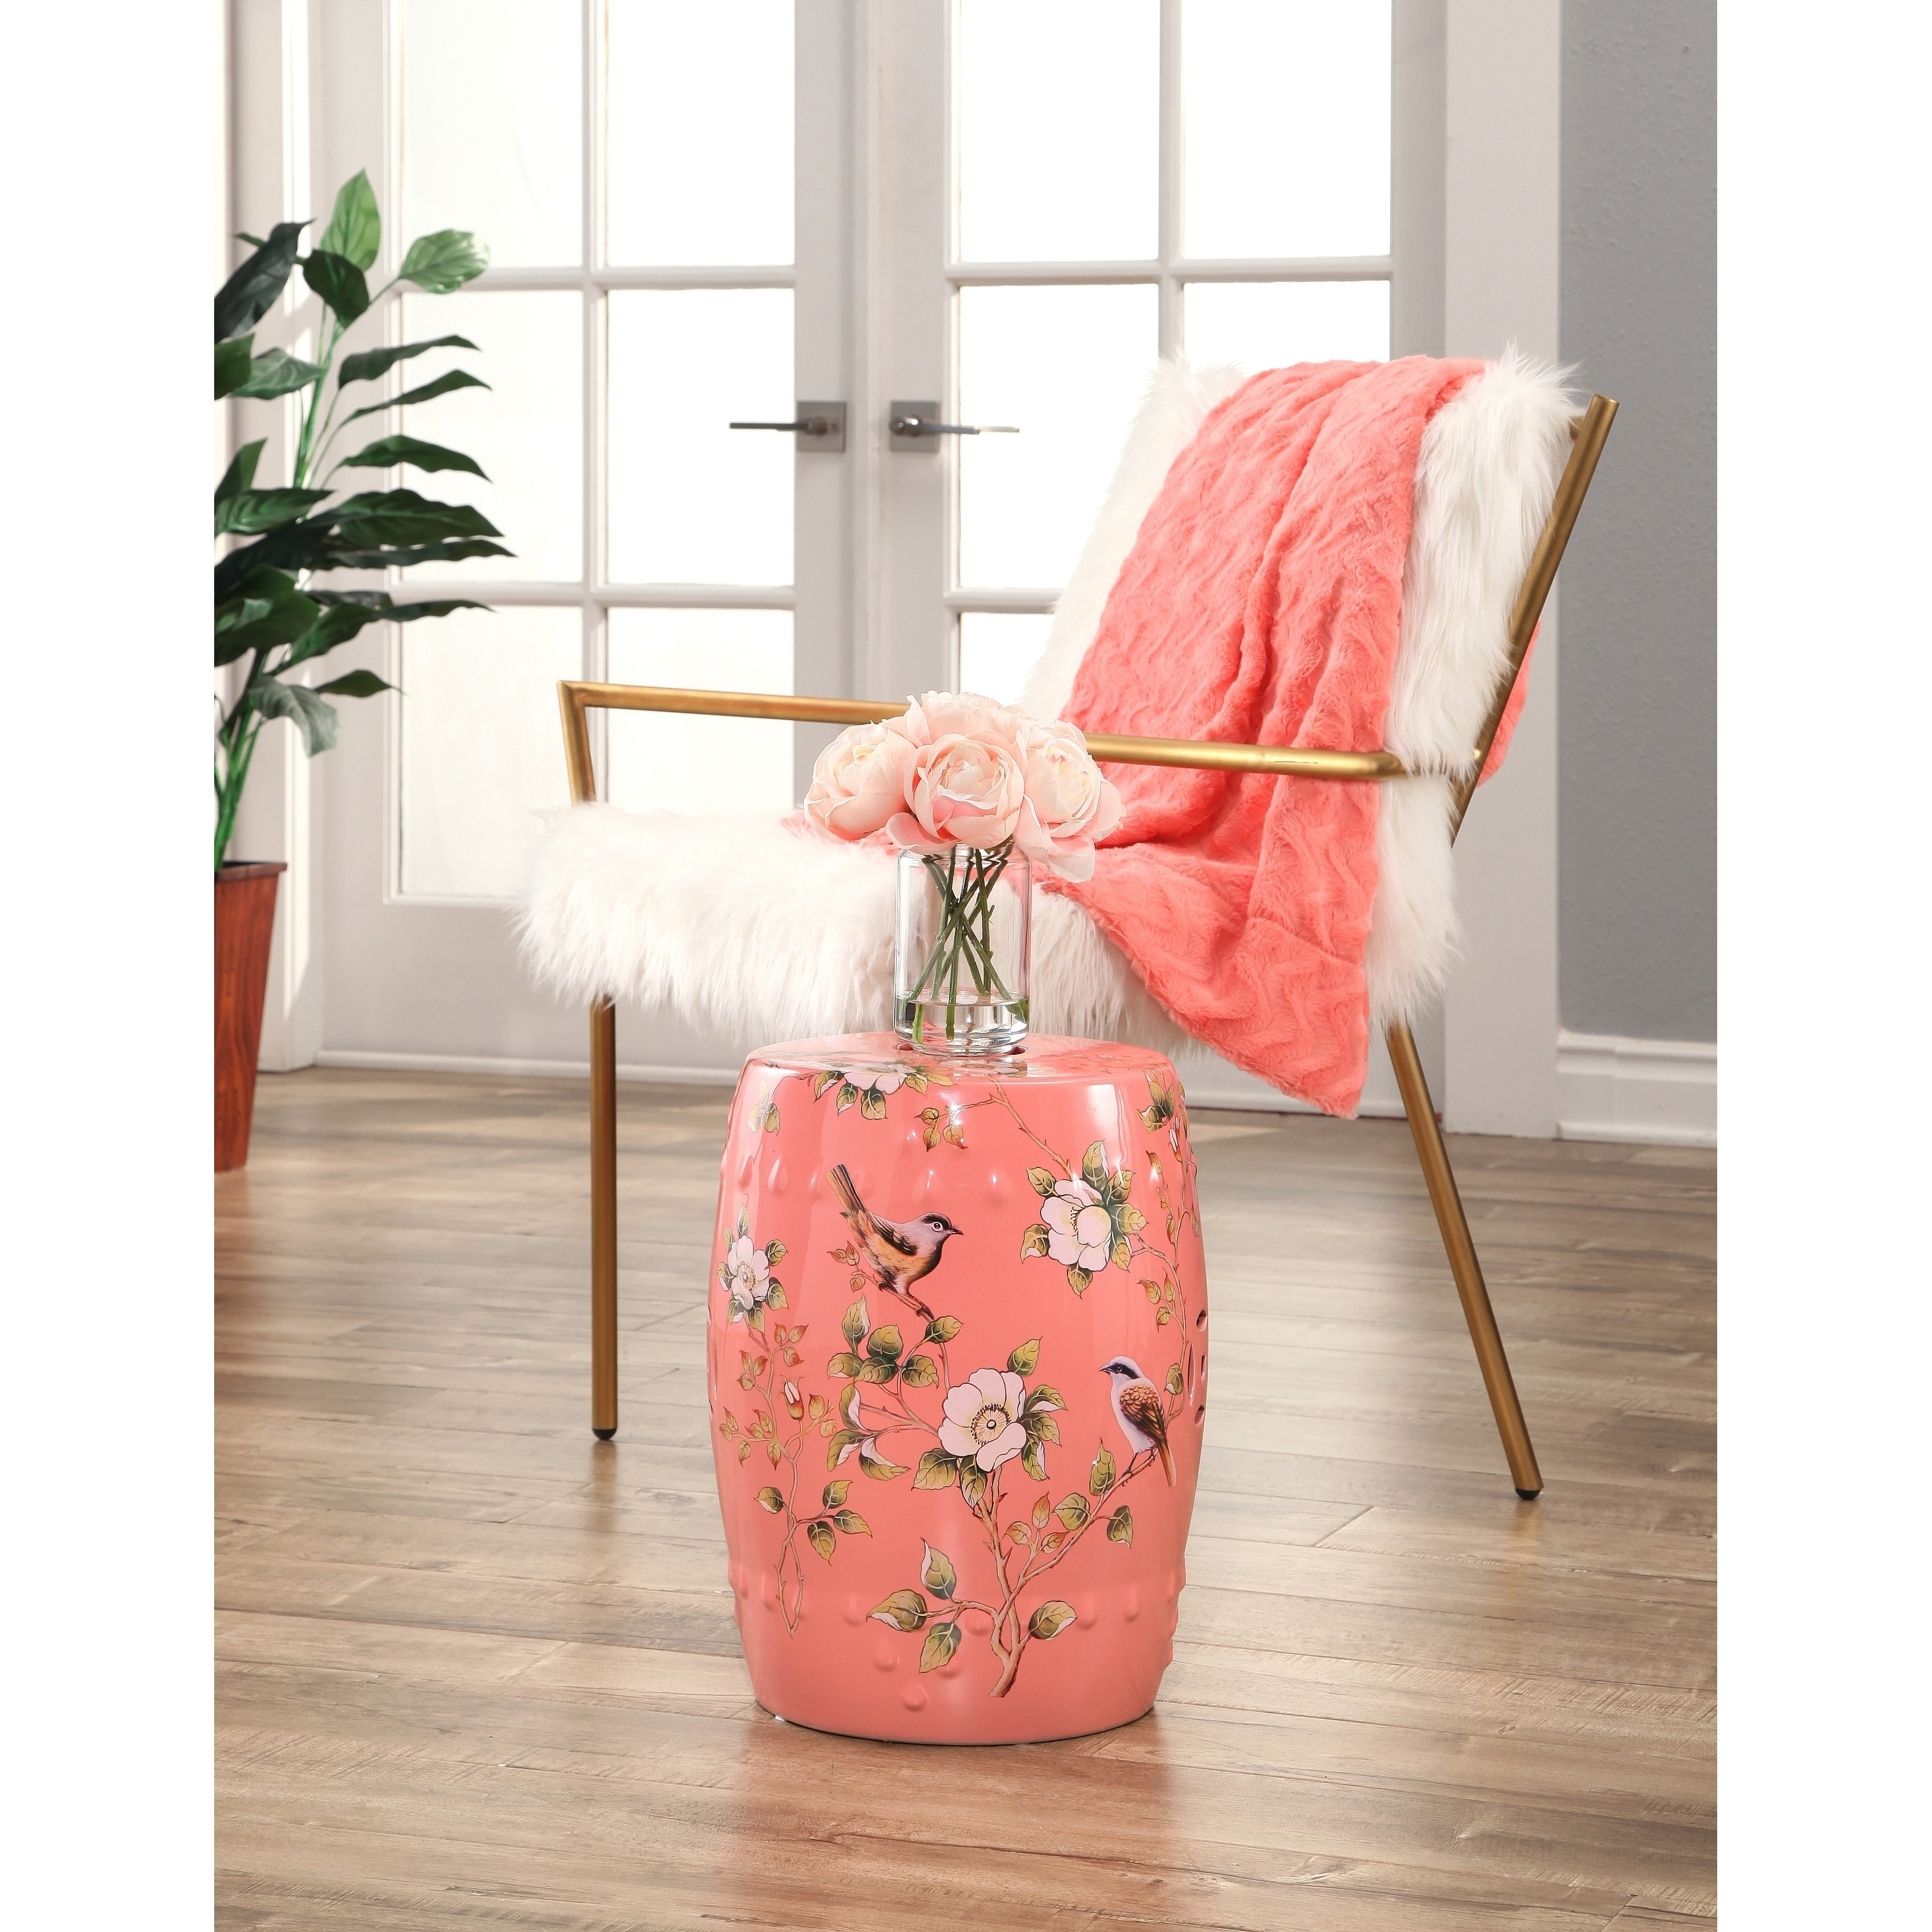 Awesome Abbyson Kyoto Hand Painted Floral Coral Ceramic Garden Stool Beatyapartments Chair Design Images Beatyapartmentscom